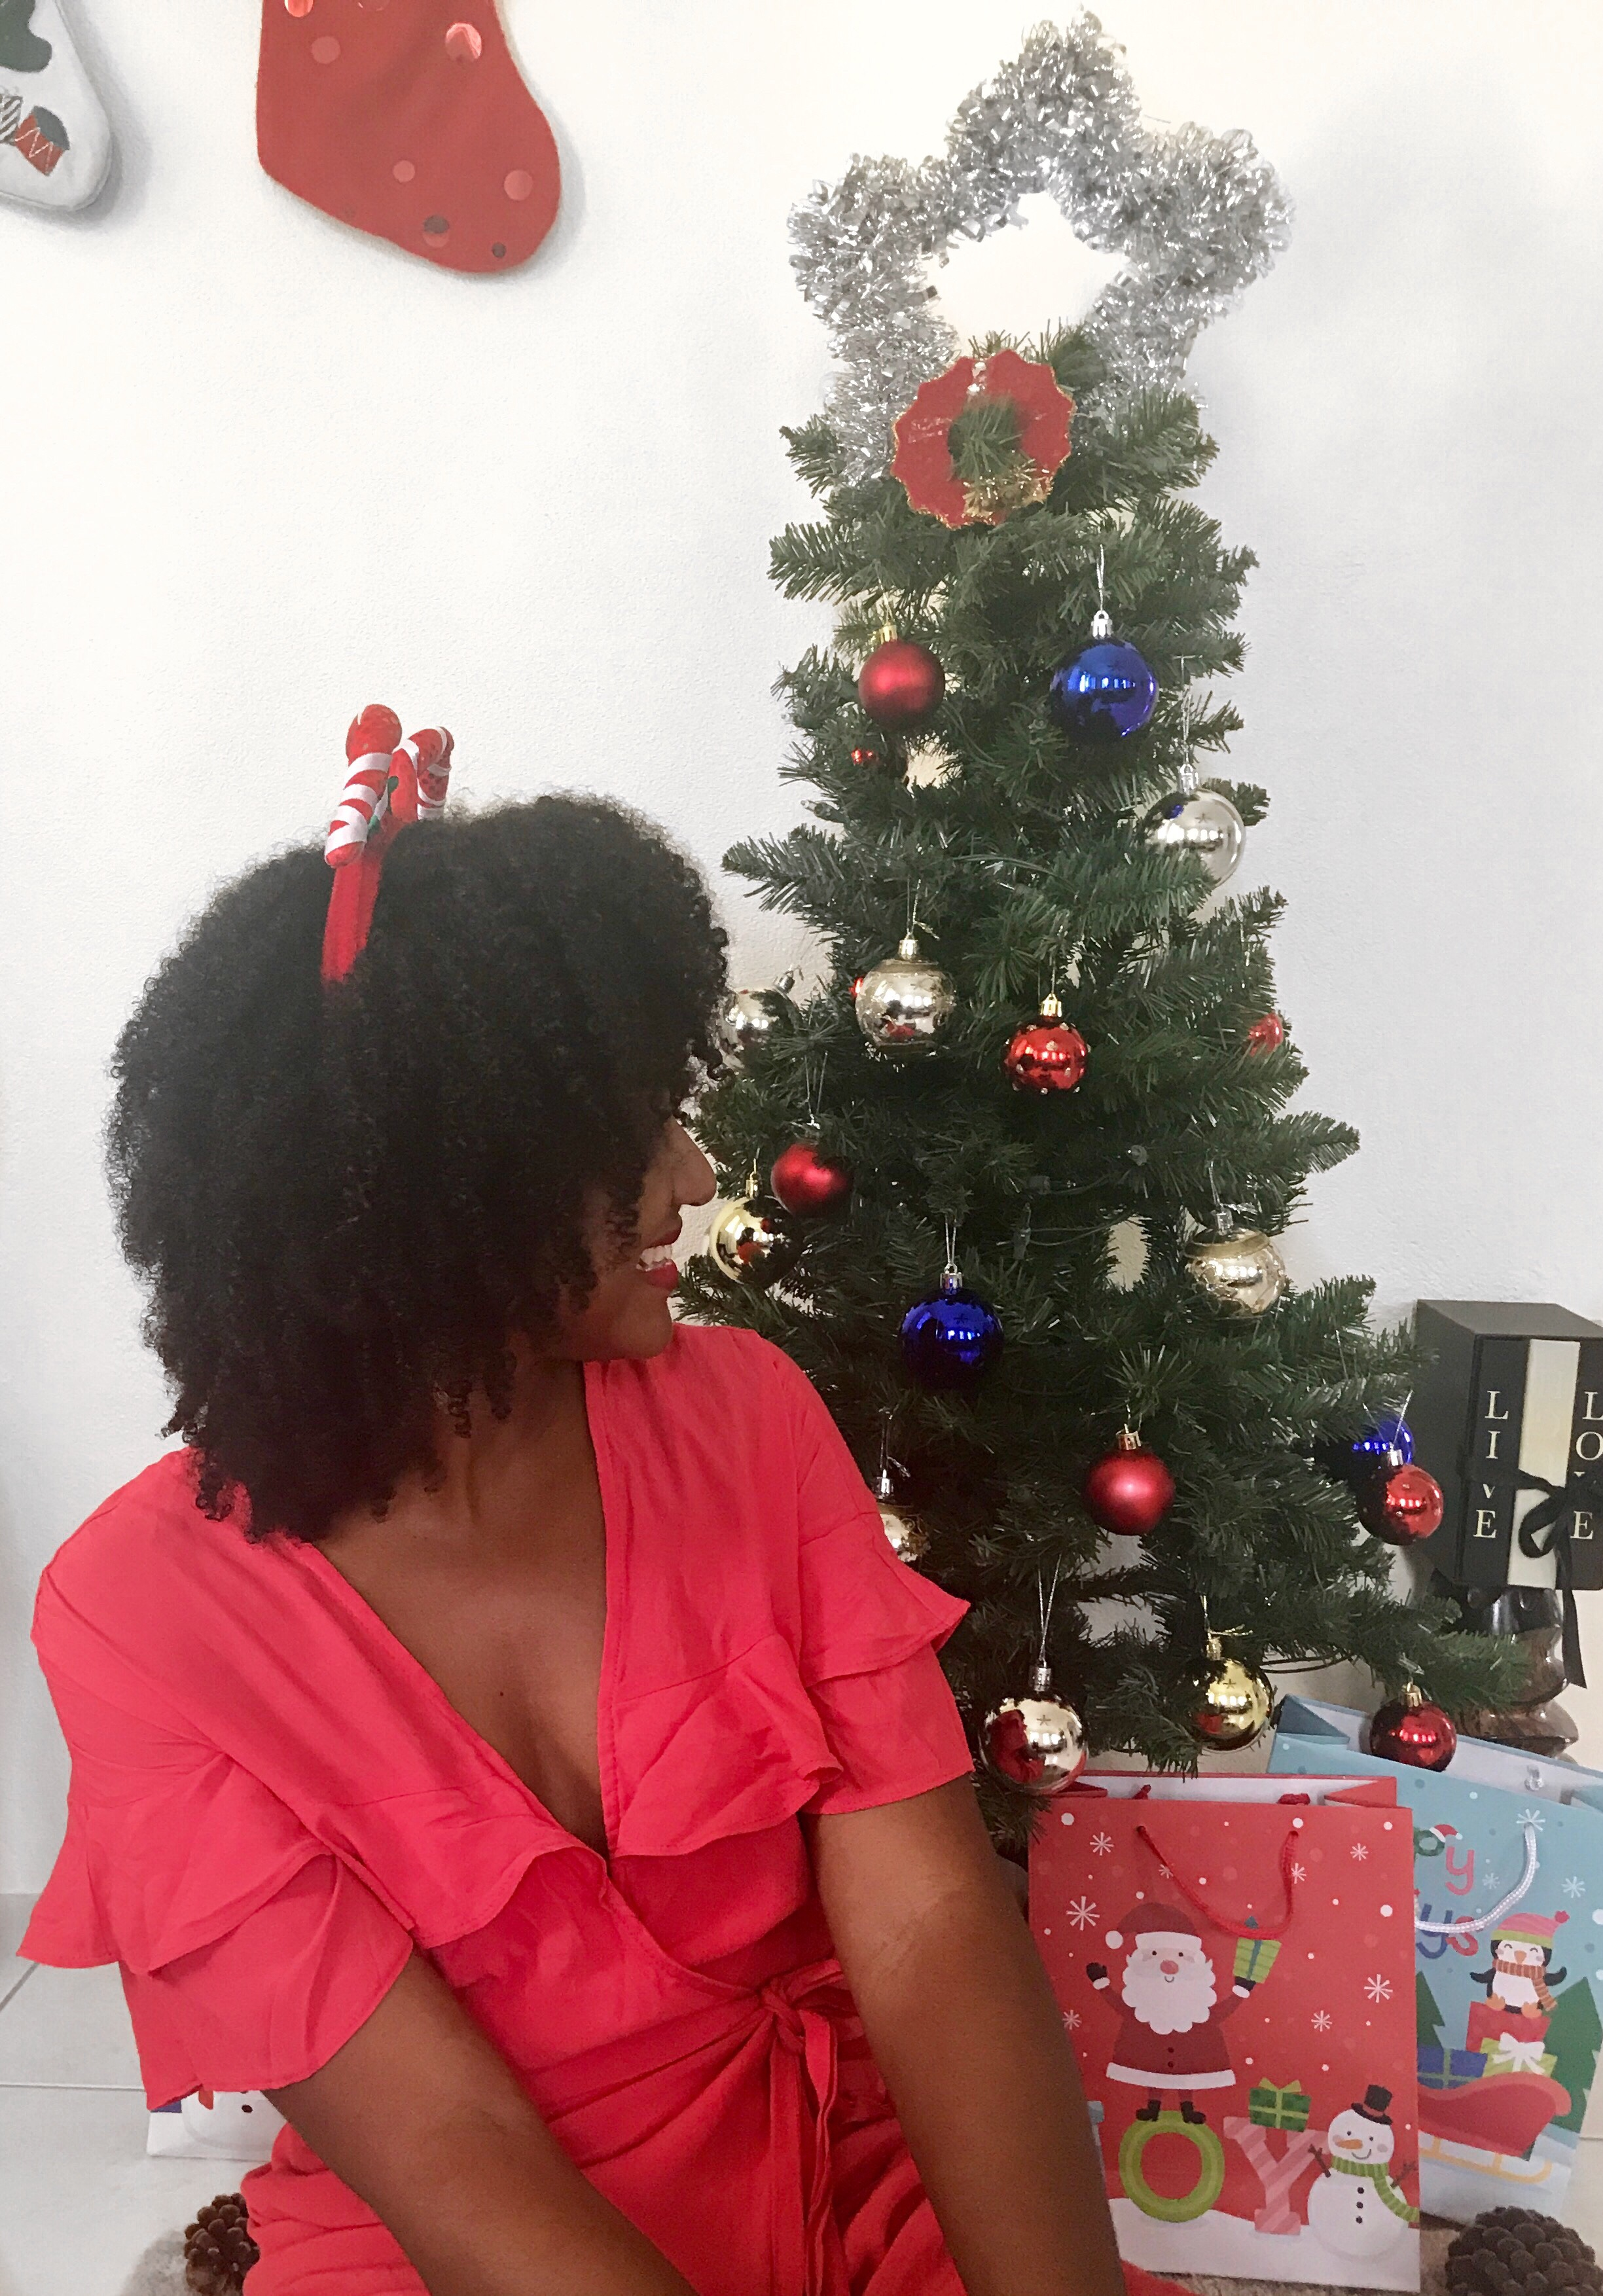 Ways to Wear Red, Red Outfits for Christmas, The Business of Chic